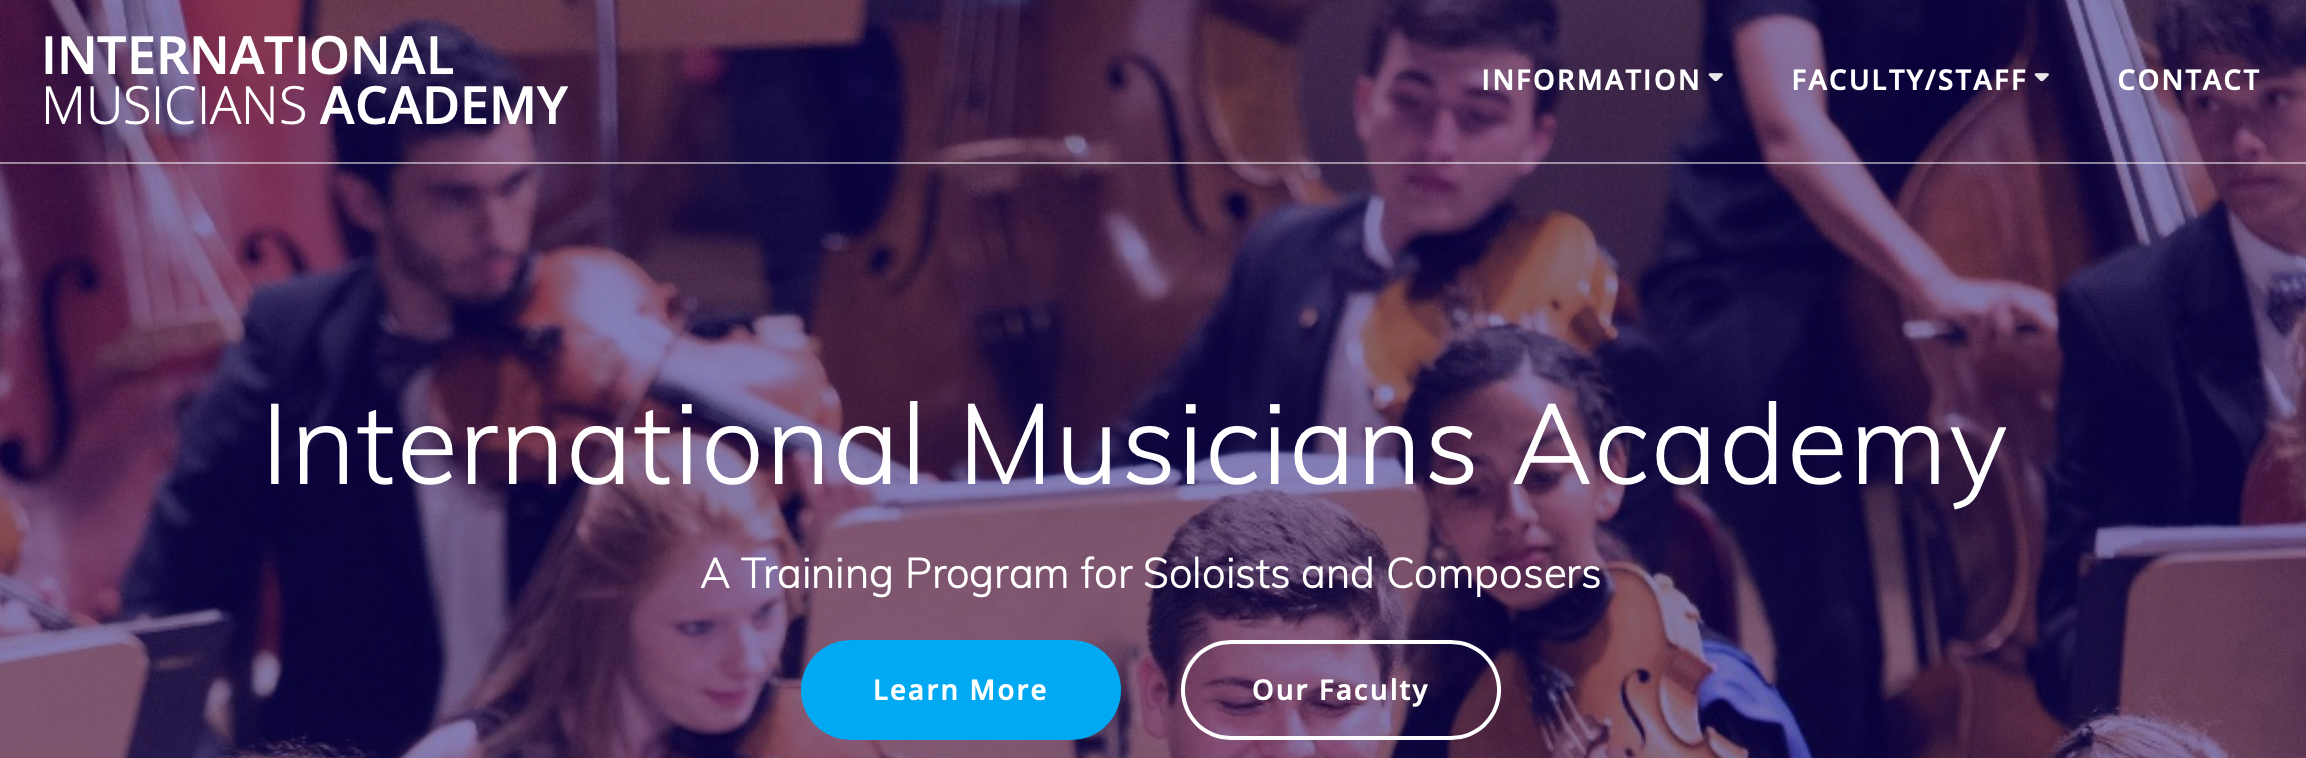 http://www.internationalmusiciansacademy.com